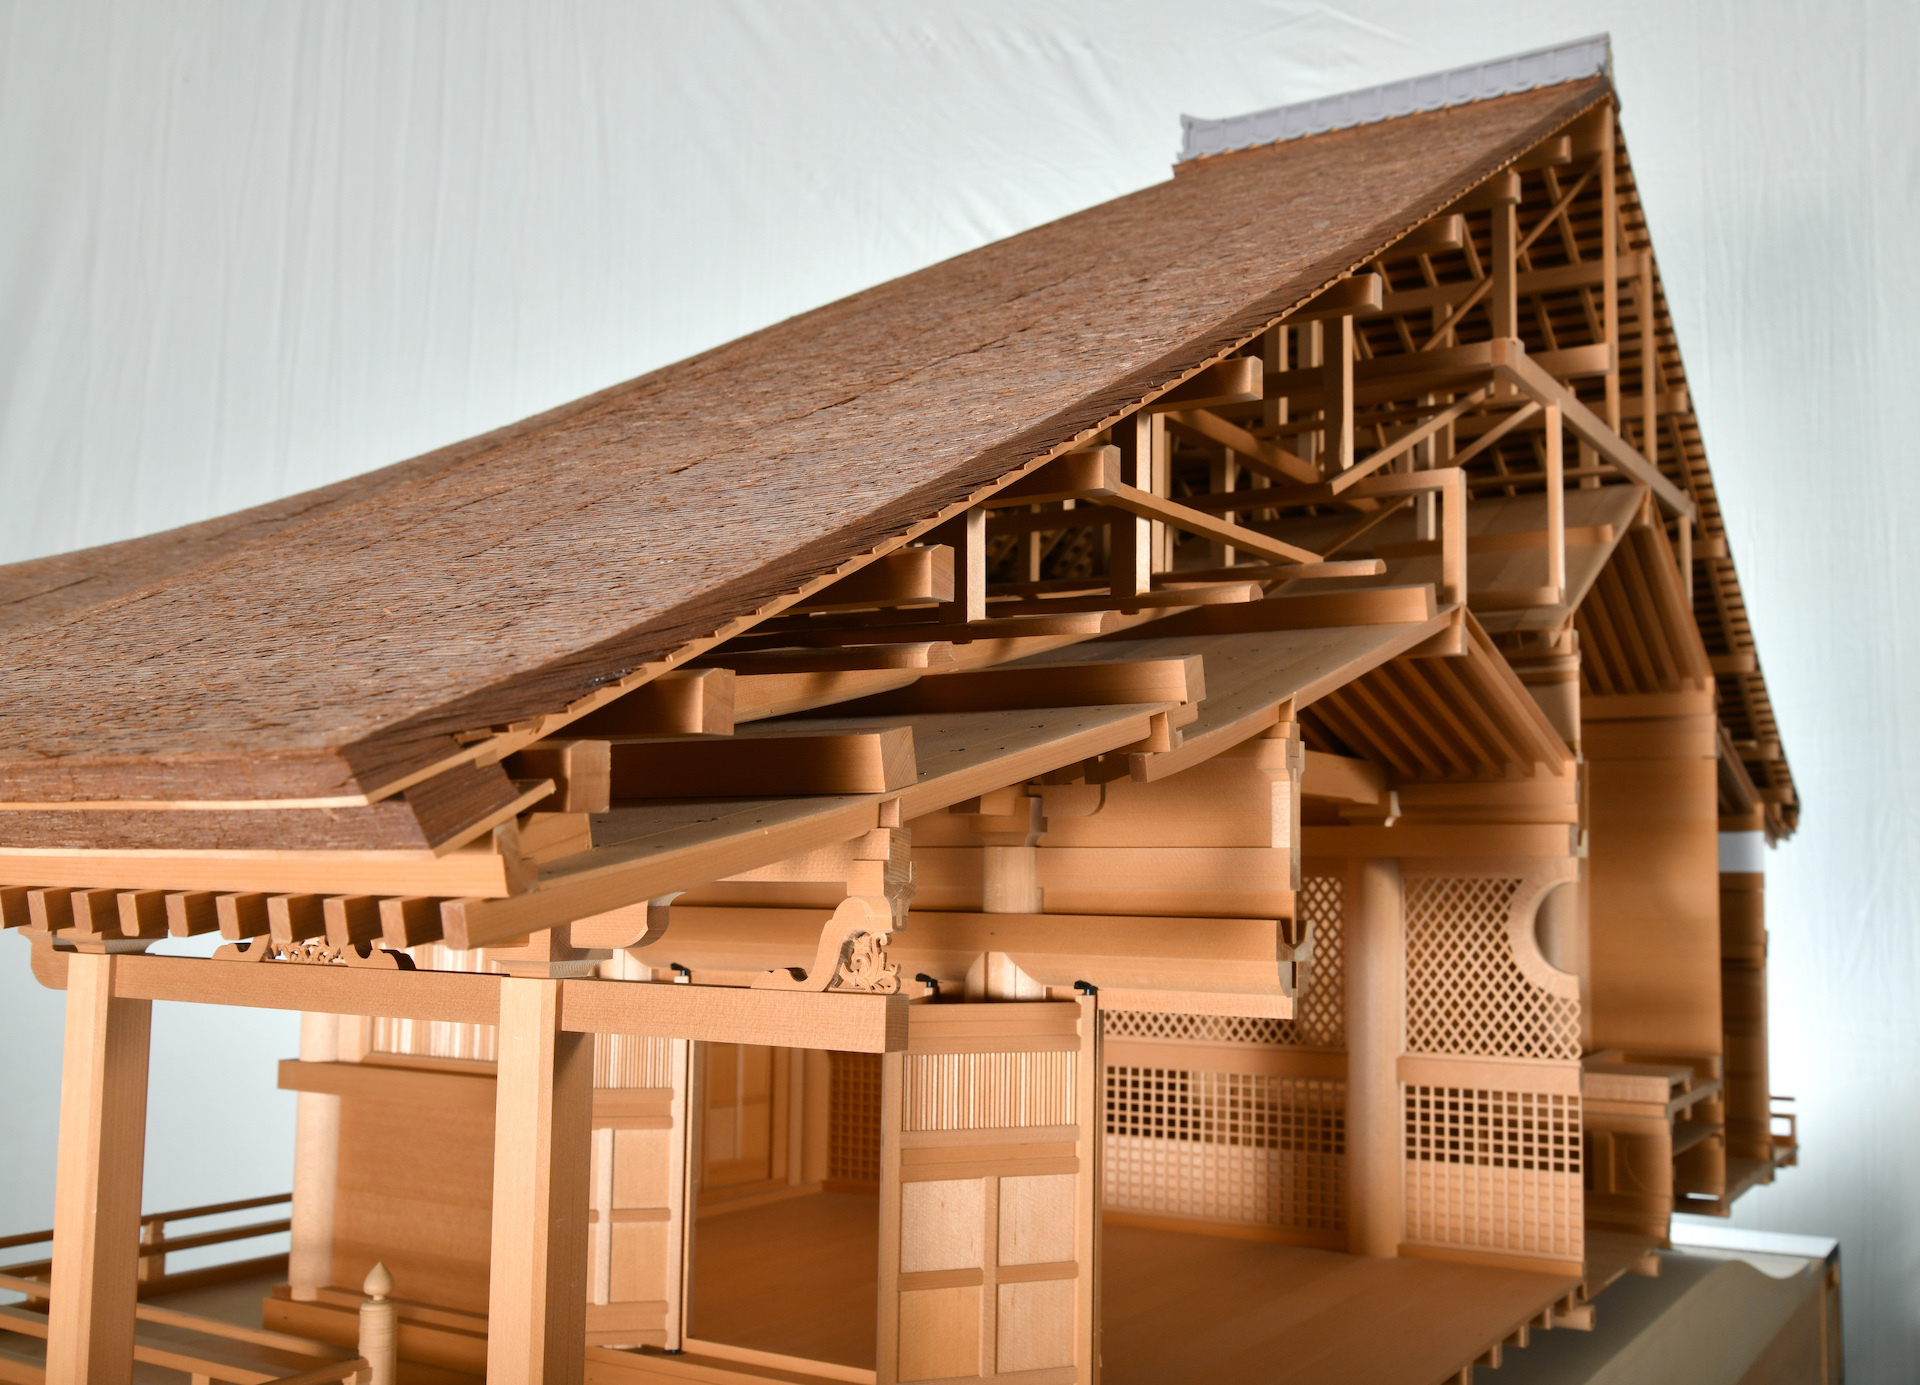 Japanese Architecture: Traditional Skills and Natural Materials